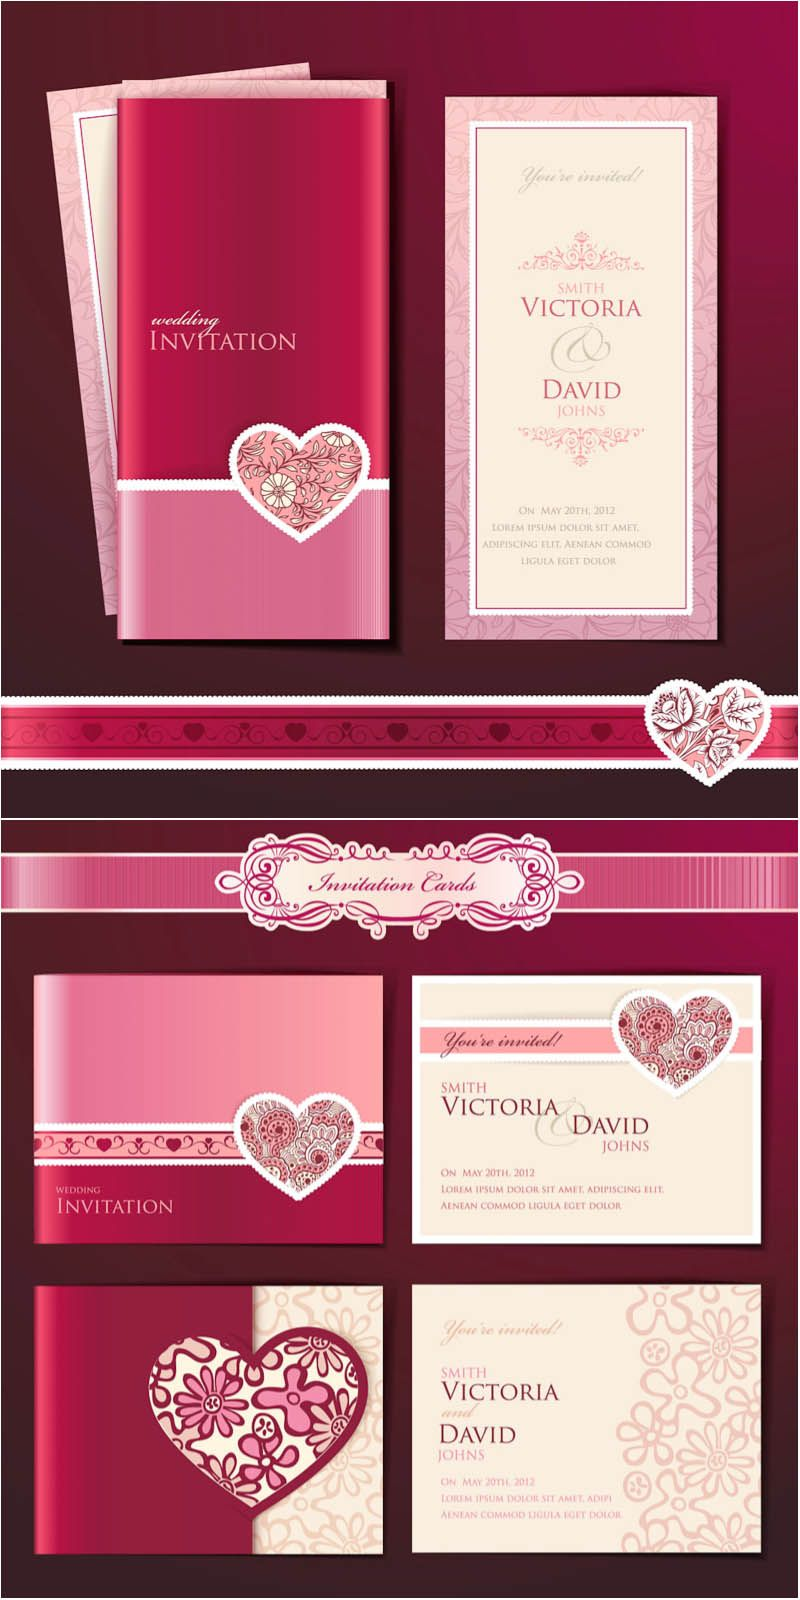 Wedding invitation card vector | Wedding Detail | Pinterest ...